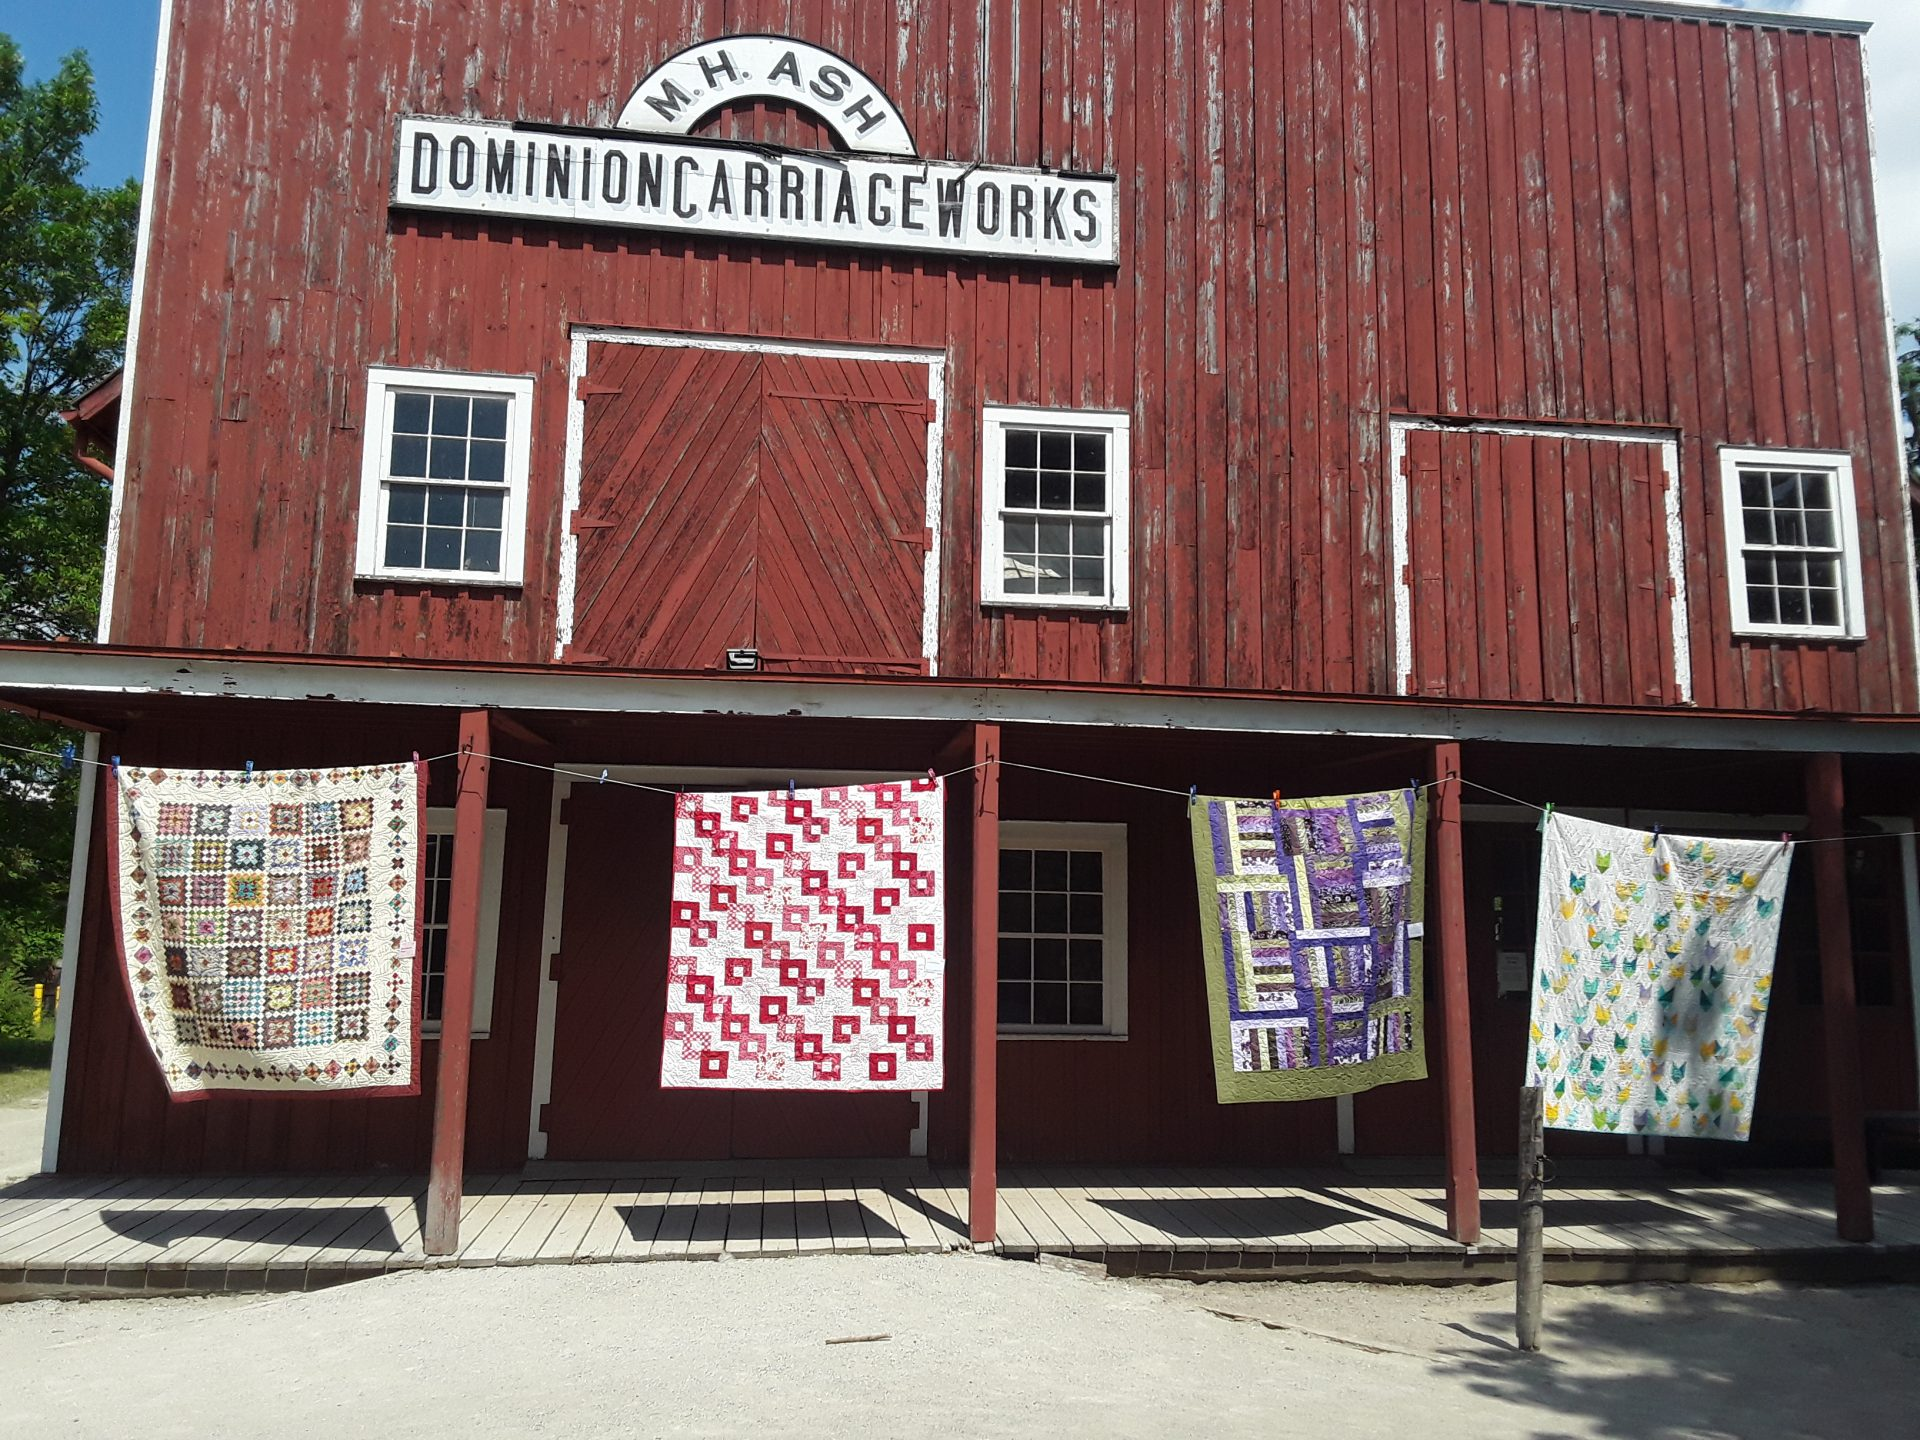 Quilts hanging at the carriage works building